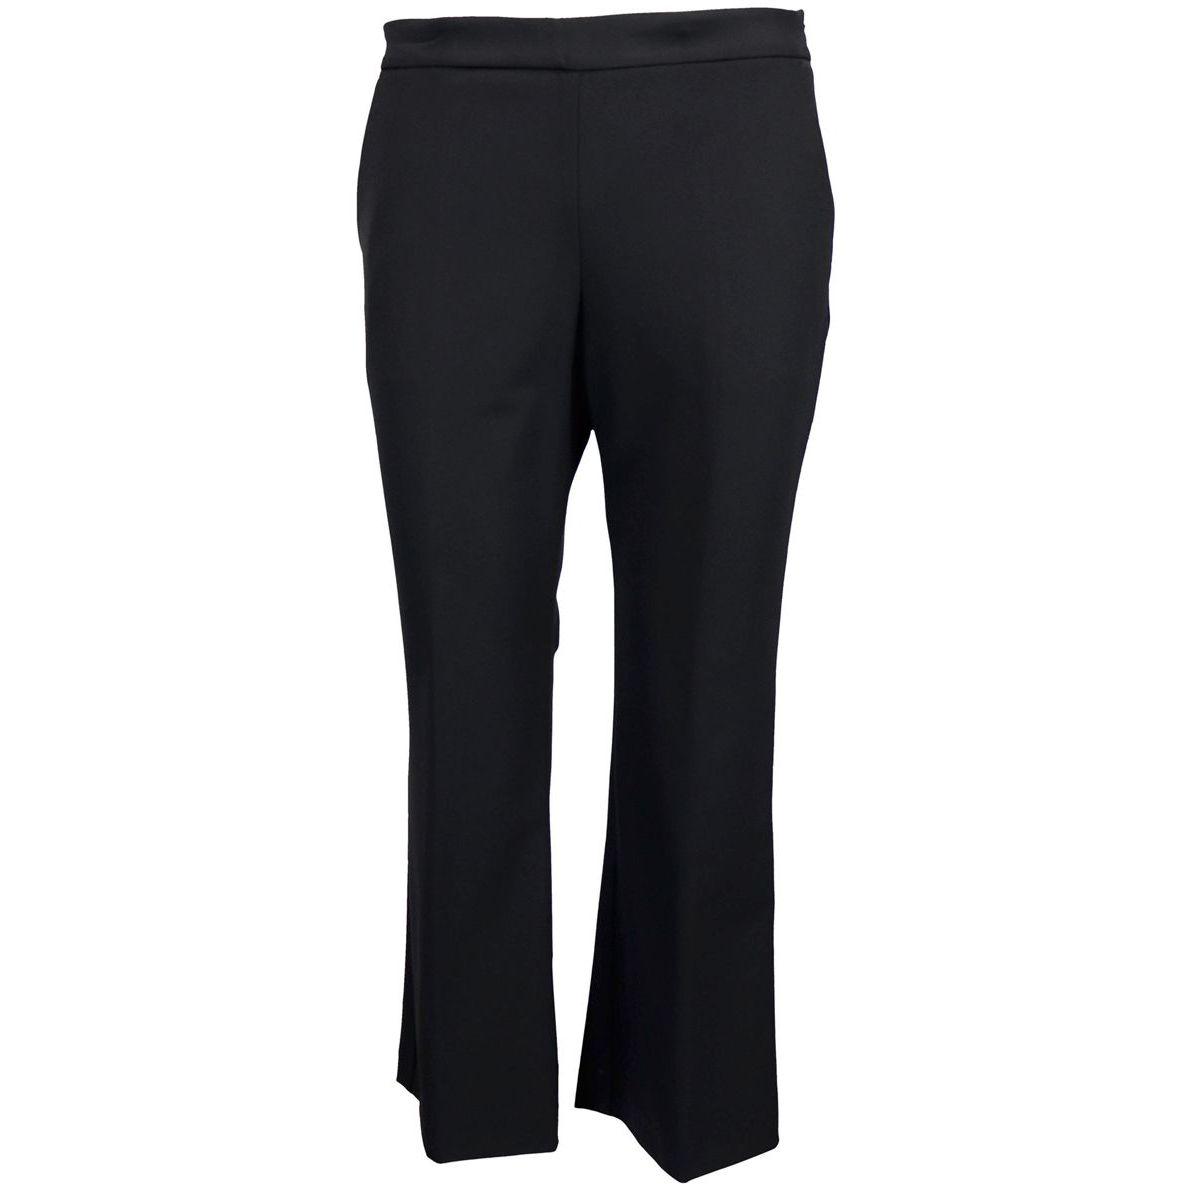 Wide trouser pockets on the bottom Black Maliparmi